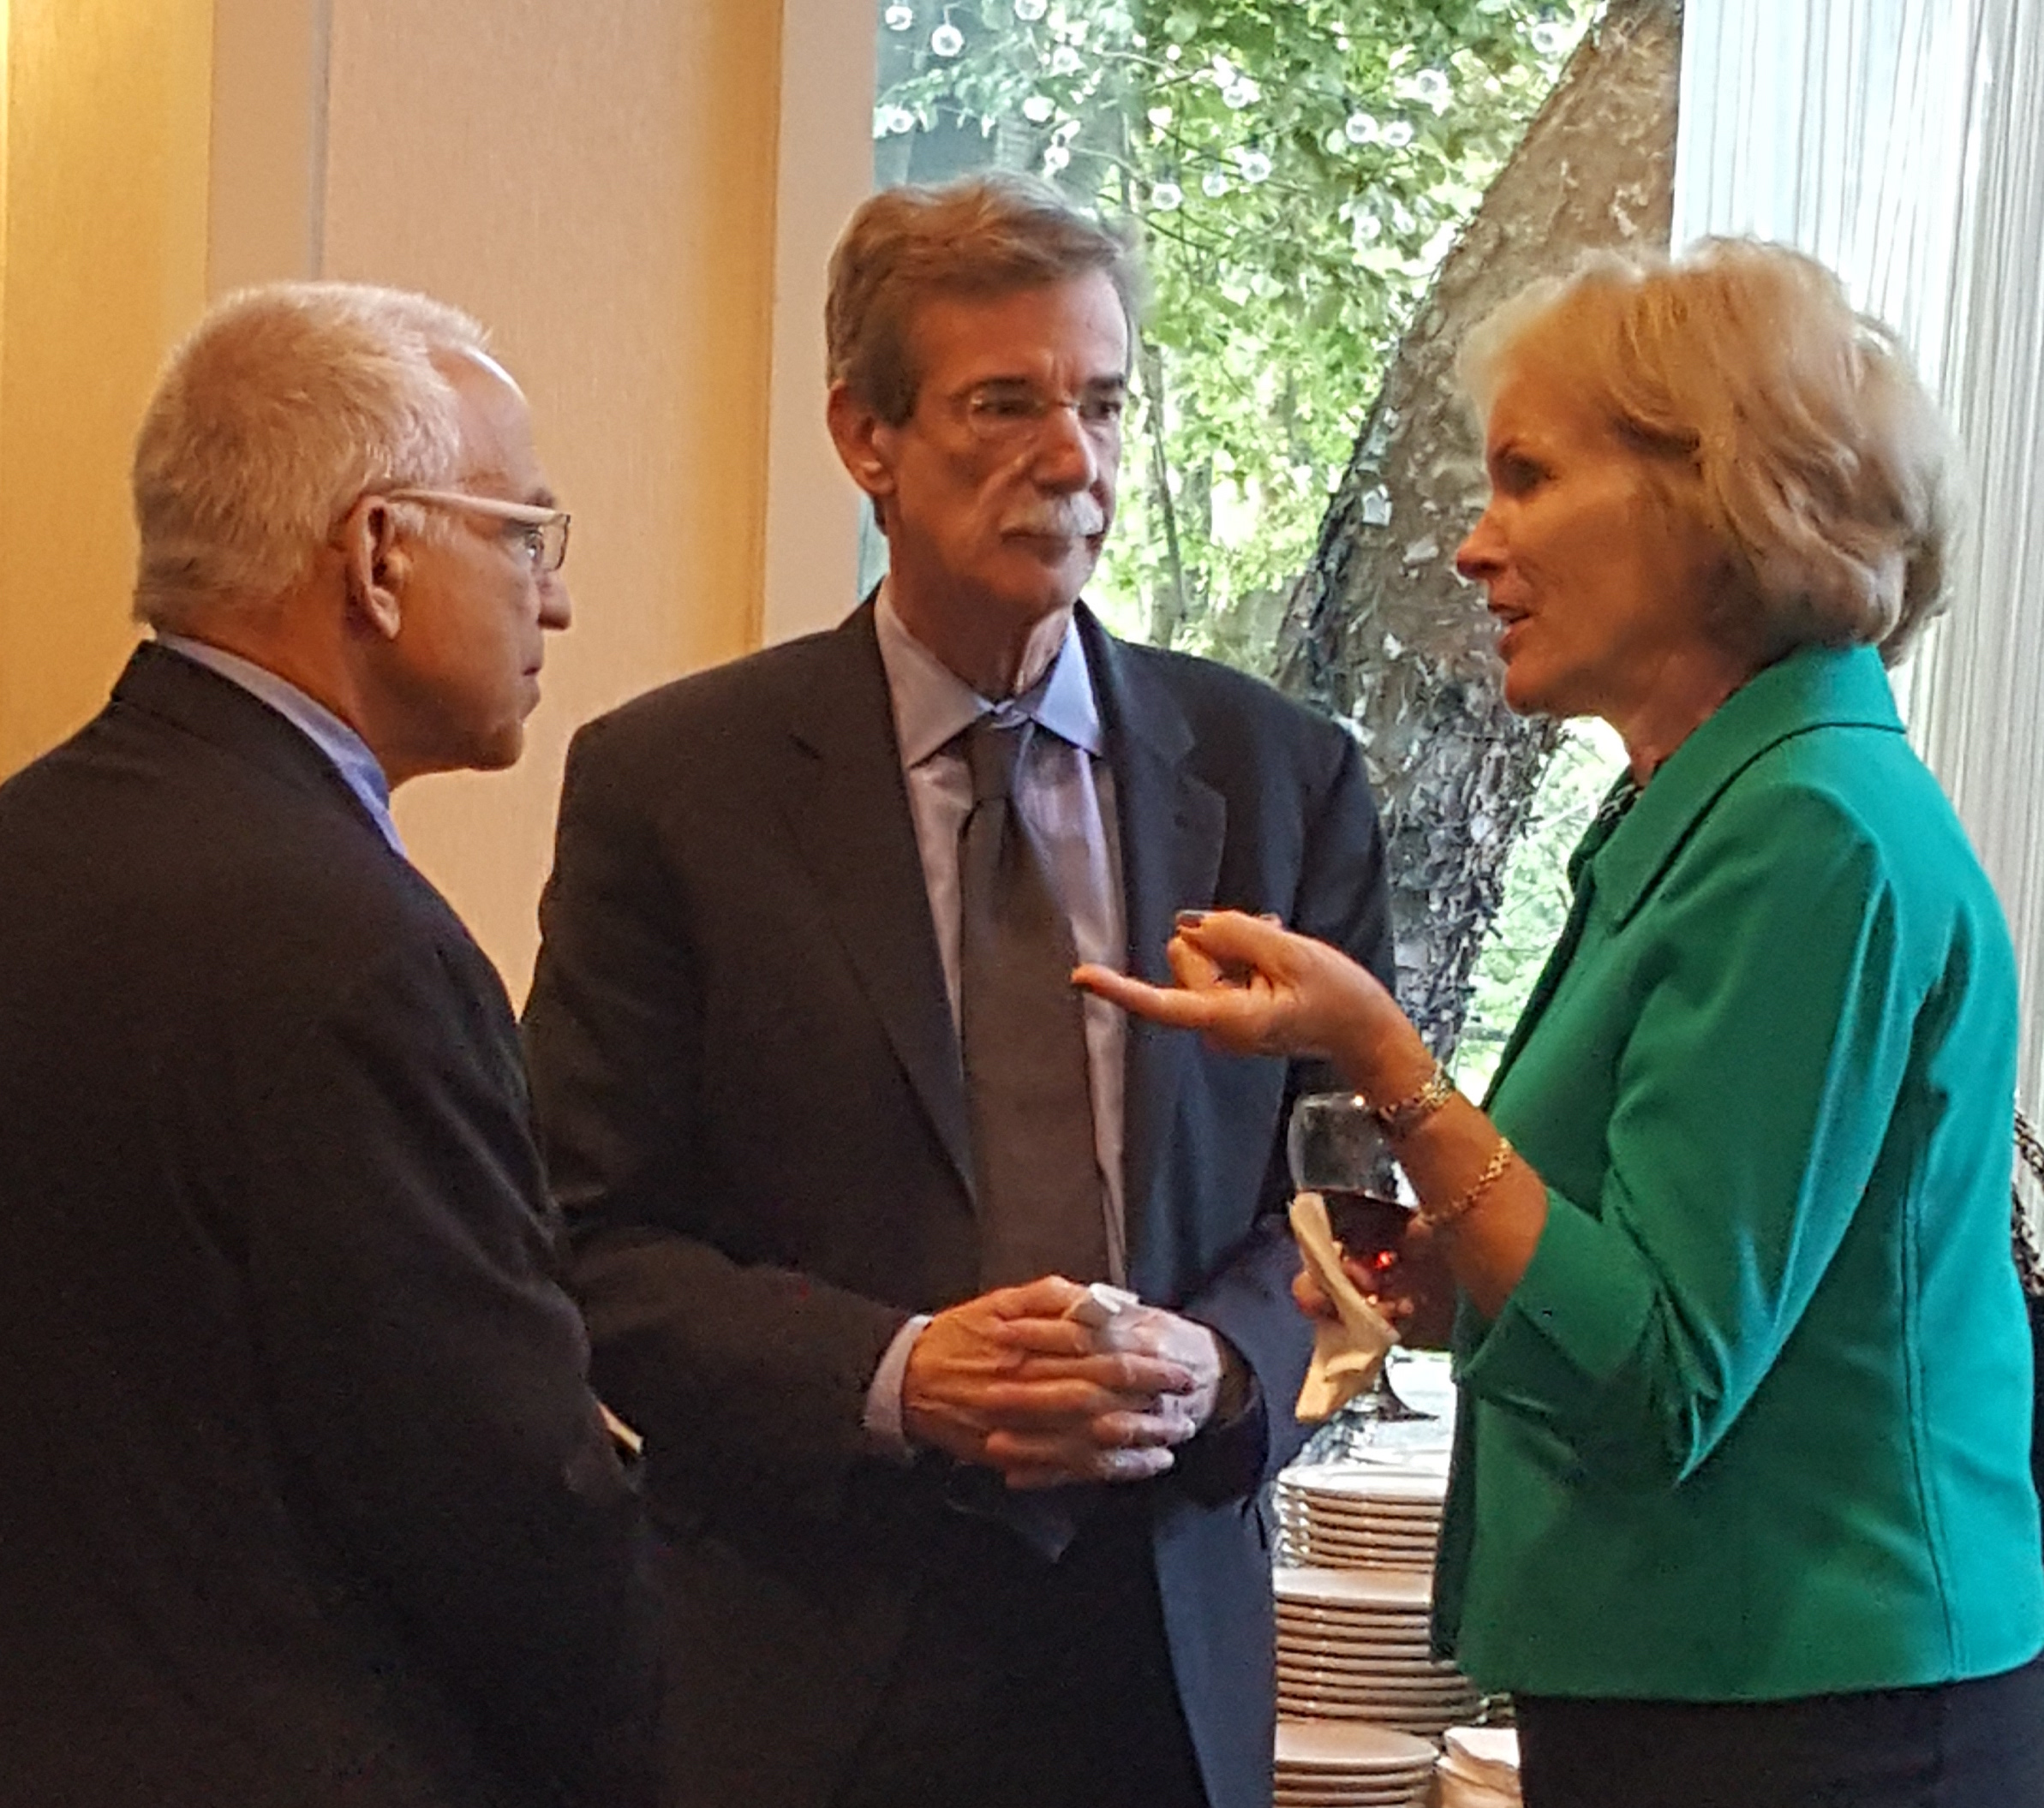 (L-R): Bill Lebovich, Maryland Attorney General Brian Frosh, and Fran Phillips